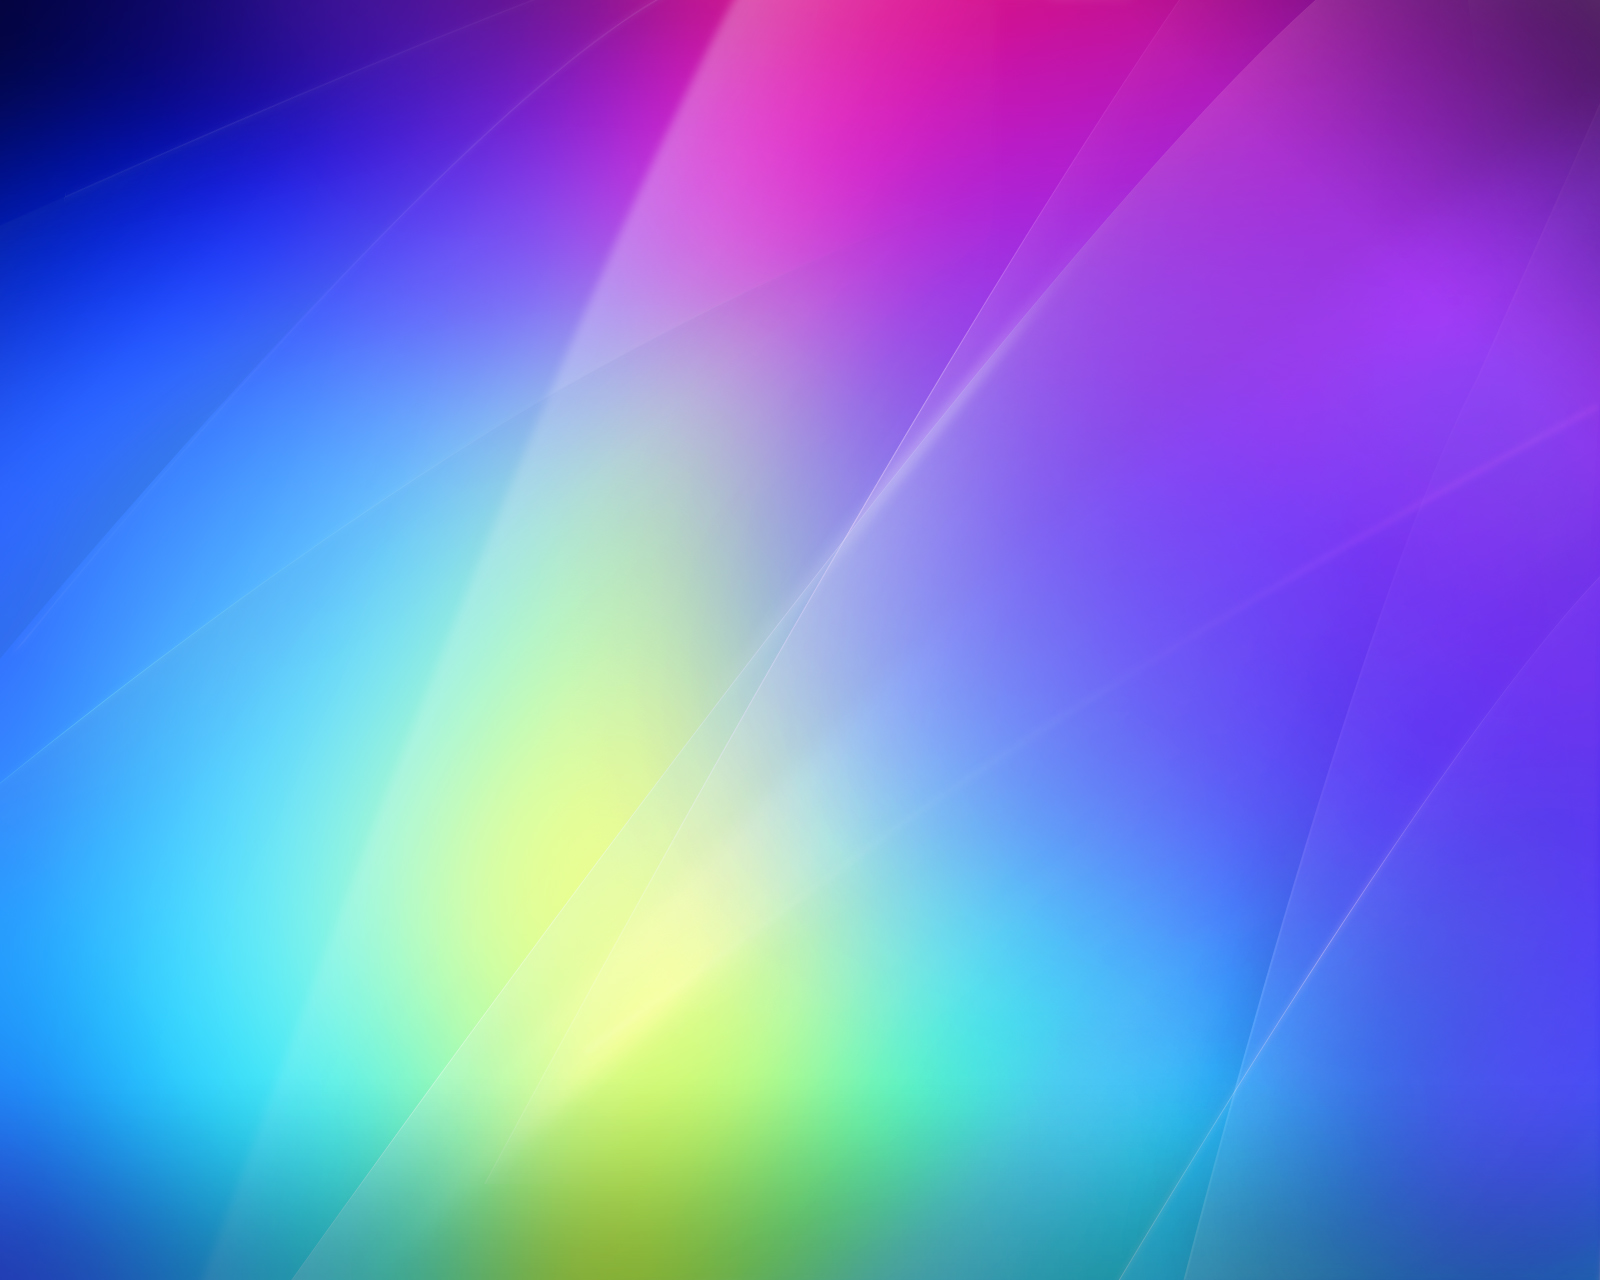 Wallpaper For Samsung Tab 4 Wallpapersafari